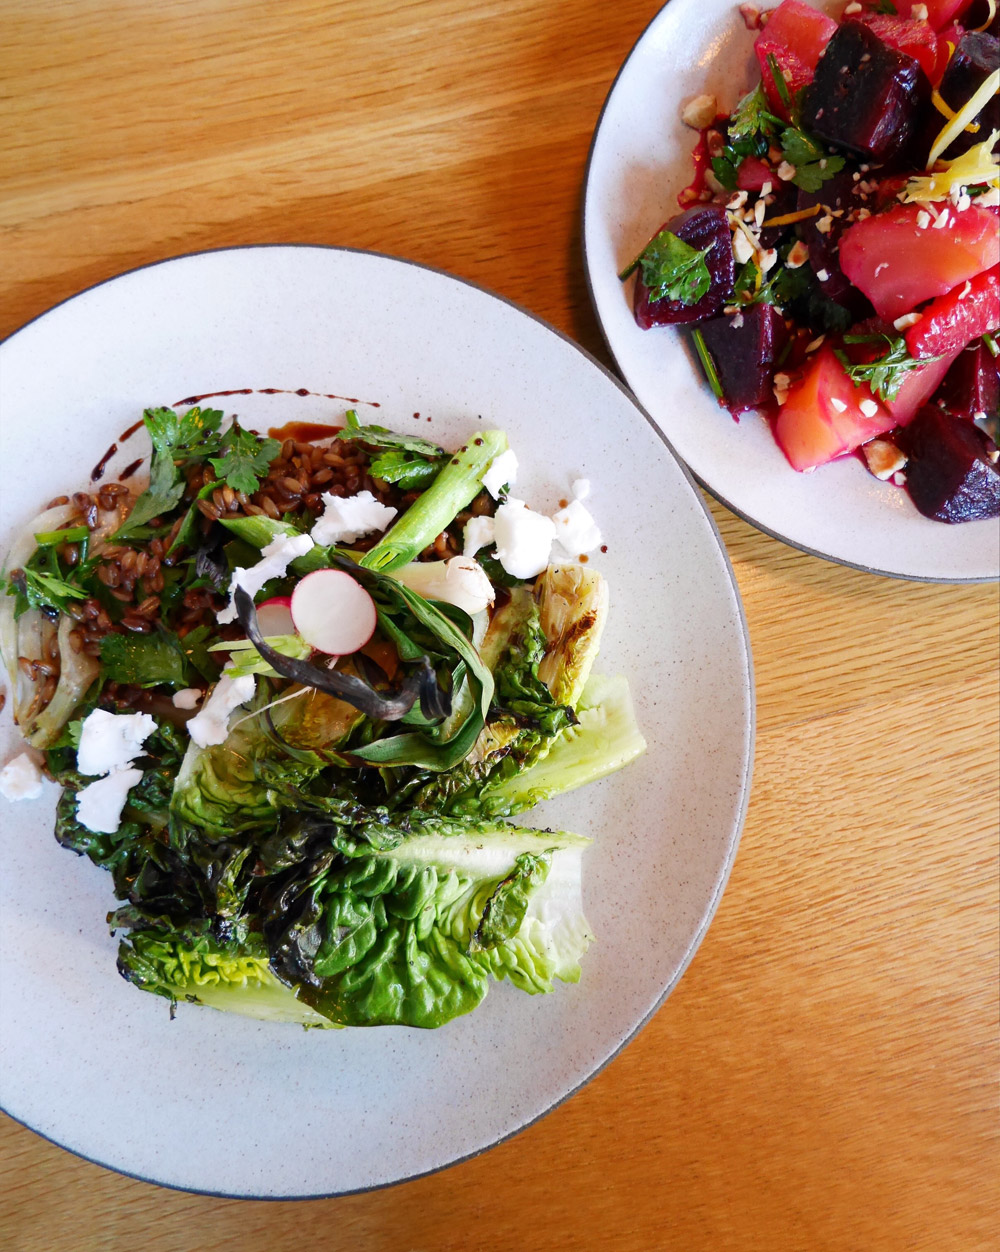 Estes, Dame Collective, Romaine and Farro Salad, Beet Salad